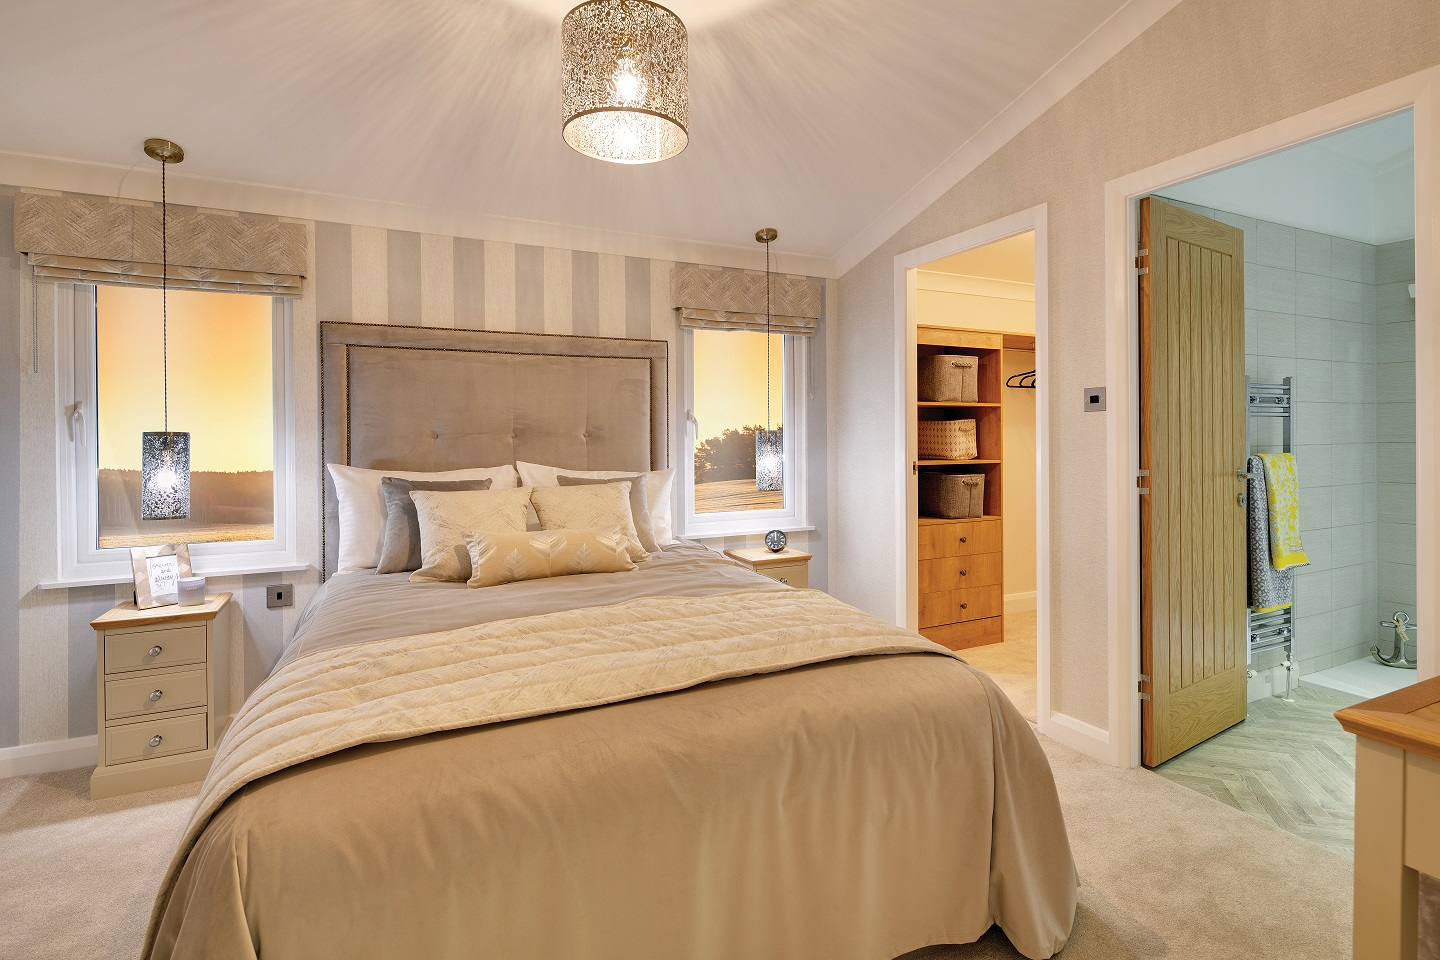 Willerby Delamere: New Holiday Lodges and Park Homes for Sale, Durham, Durham and Weardale Large Image 3